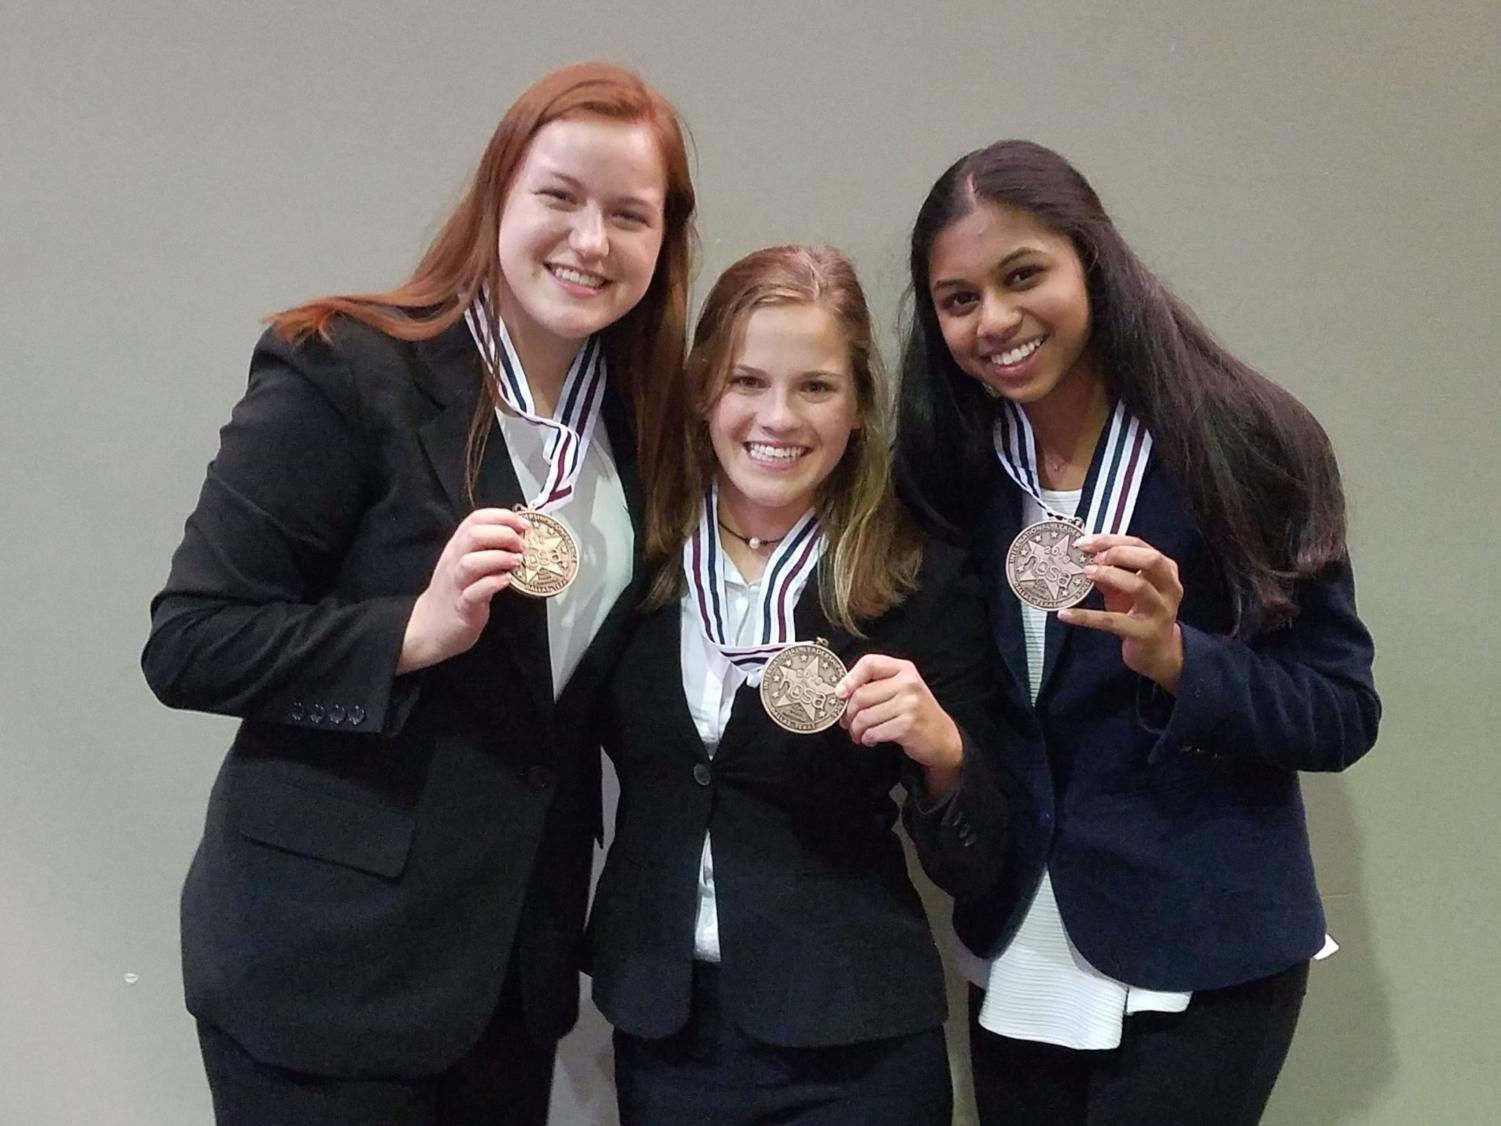 Seniors Kayla Berry, Kelley Sinning and Neha Bollam (from left to right) stand backstage with their medals after learning they placed third for their Tuberculosis Tester.